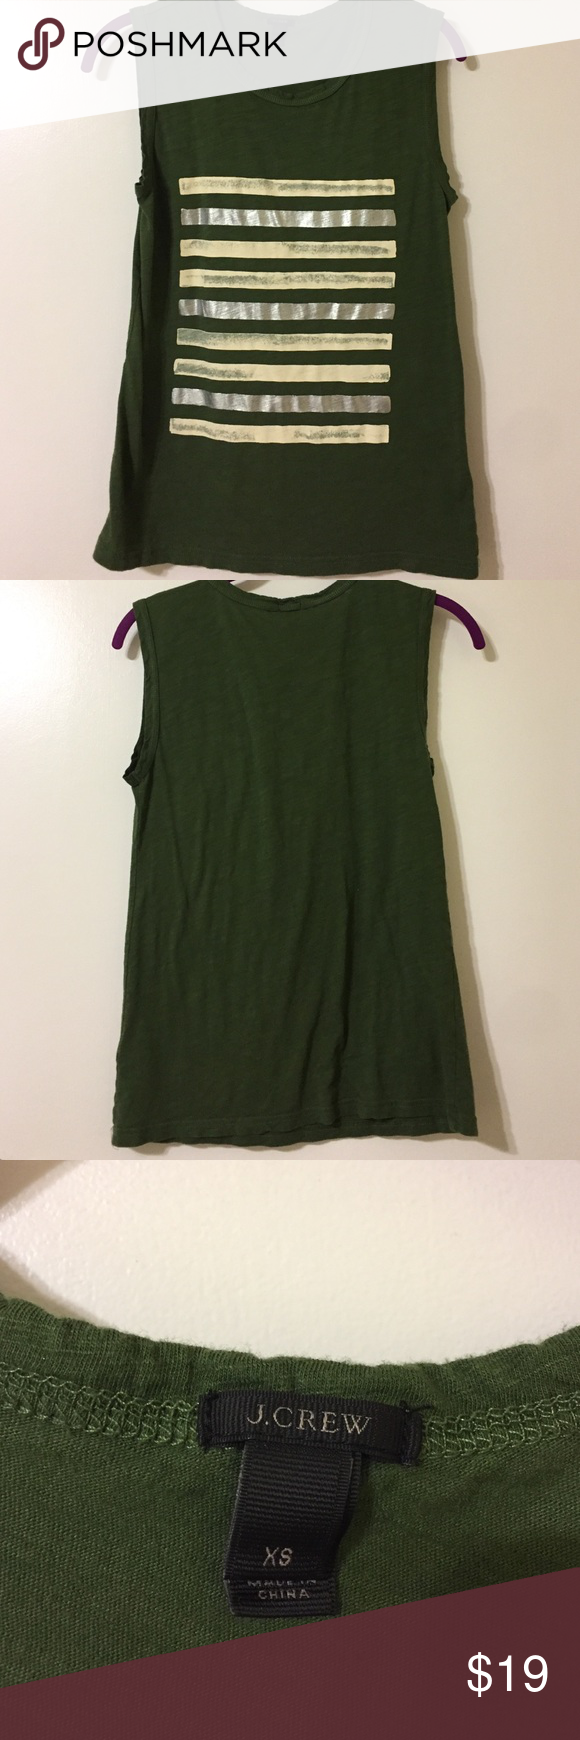 J CREW Muscle Tank - Green Green Muscle Tank with Silver and White stripes. Good as new! J. Crew Tops Muscle Tees